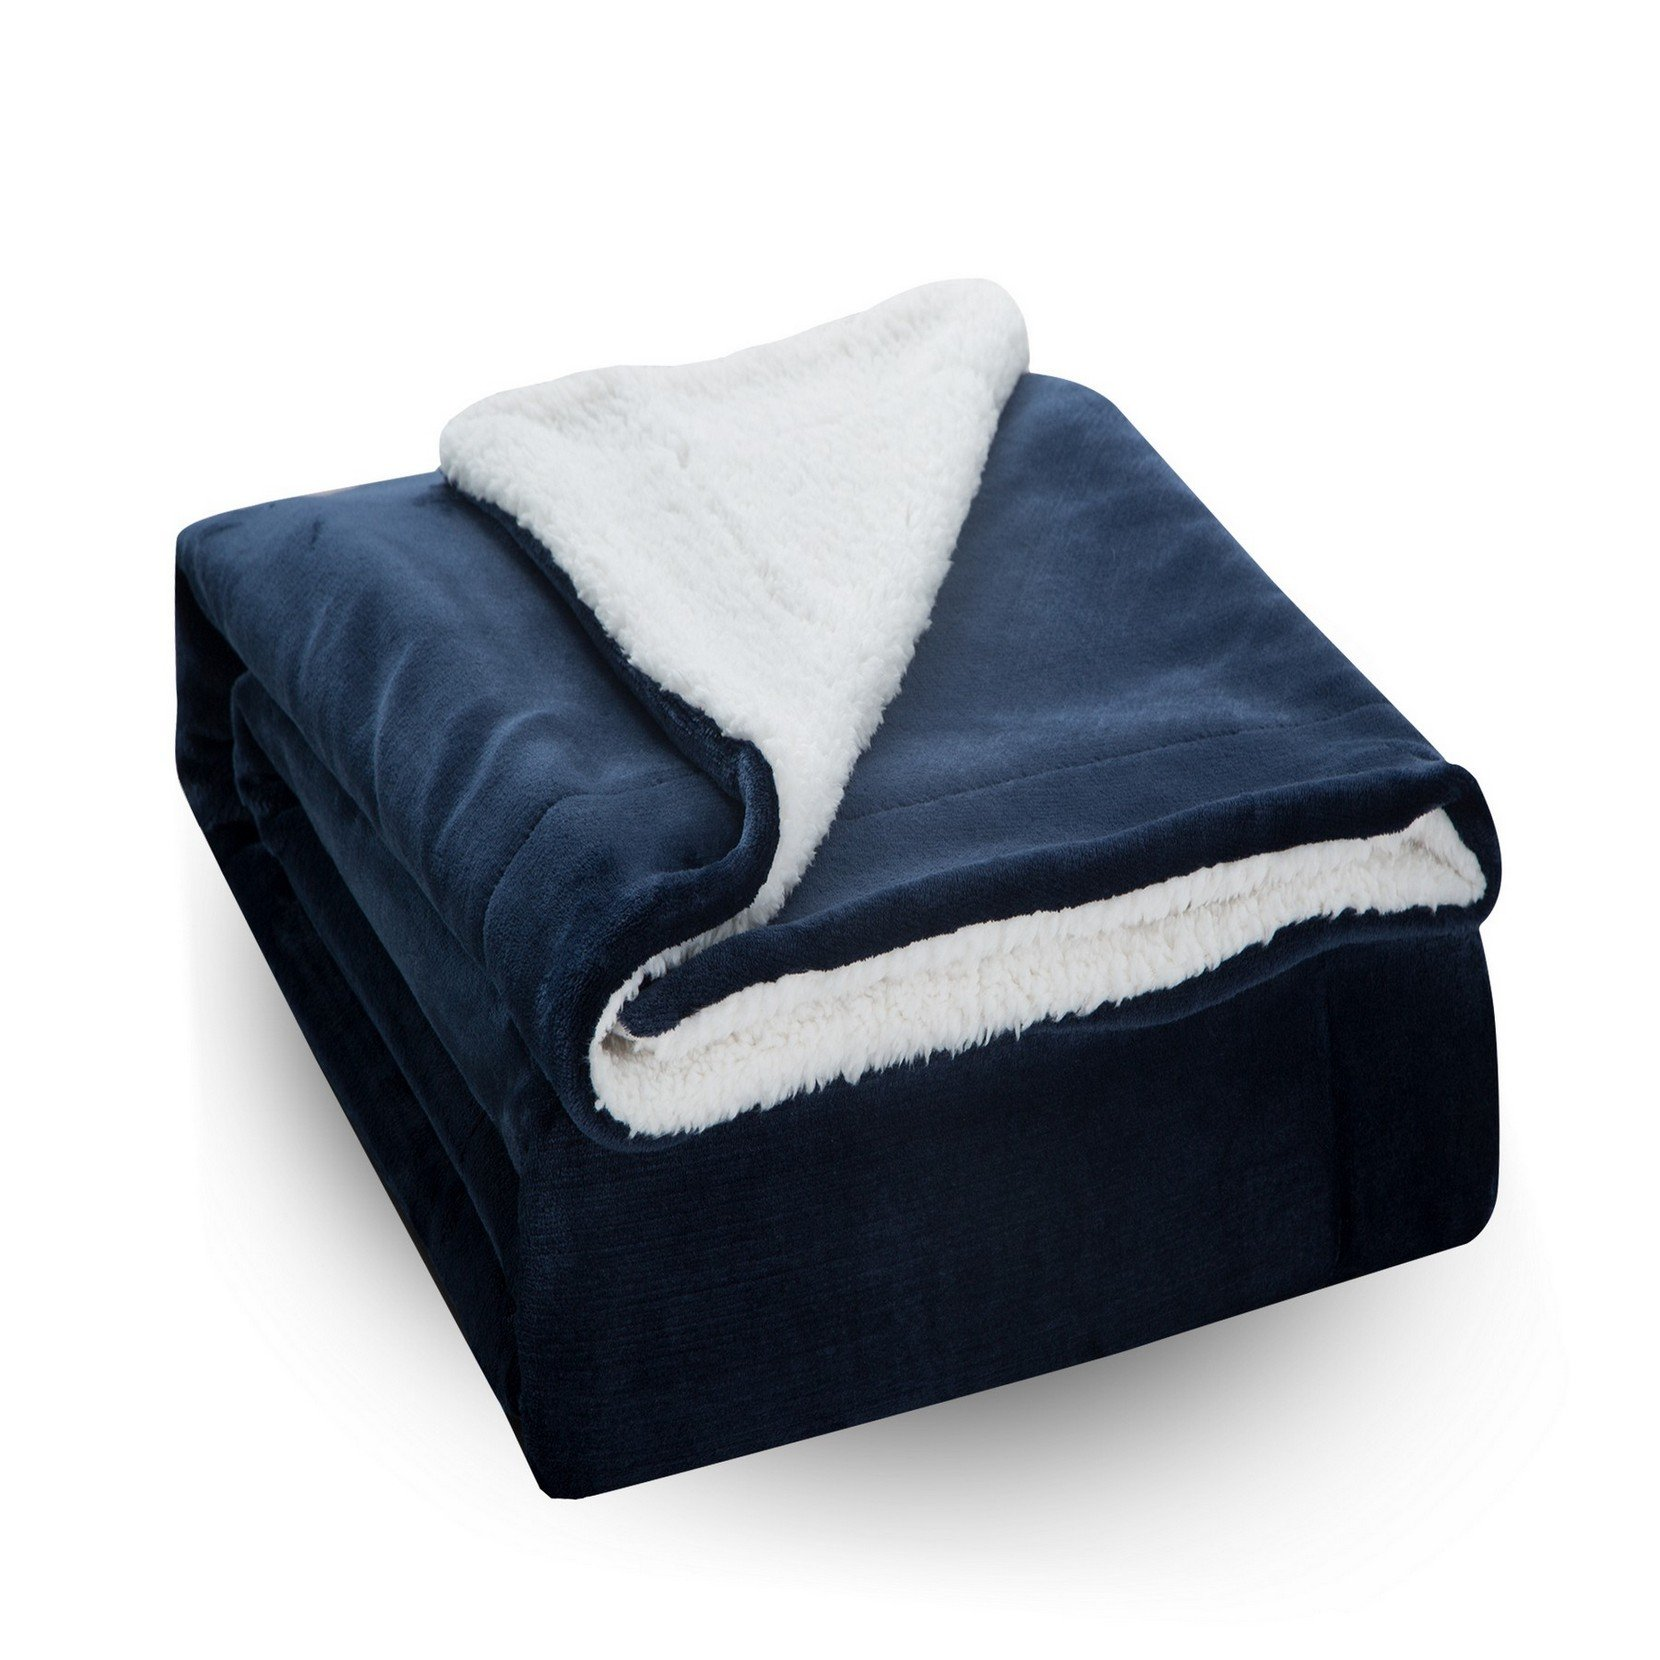 Moonen Sherpa Throw Blanket Luxurious Throw Size Brush Fabric Reversible All Season Super Soft Warm Fleece Thick Fuzzy Microplush Blanket Bed Couch Gift Blankets (Navy Blue, 50x60 inches)